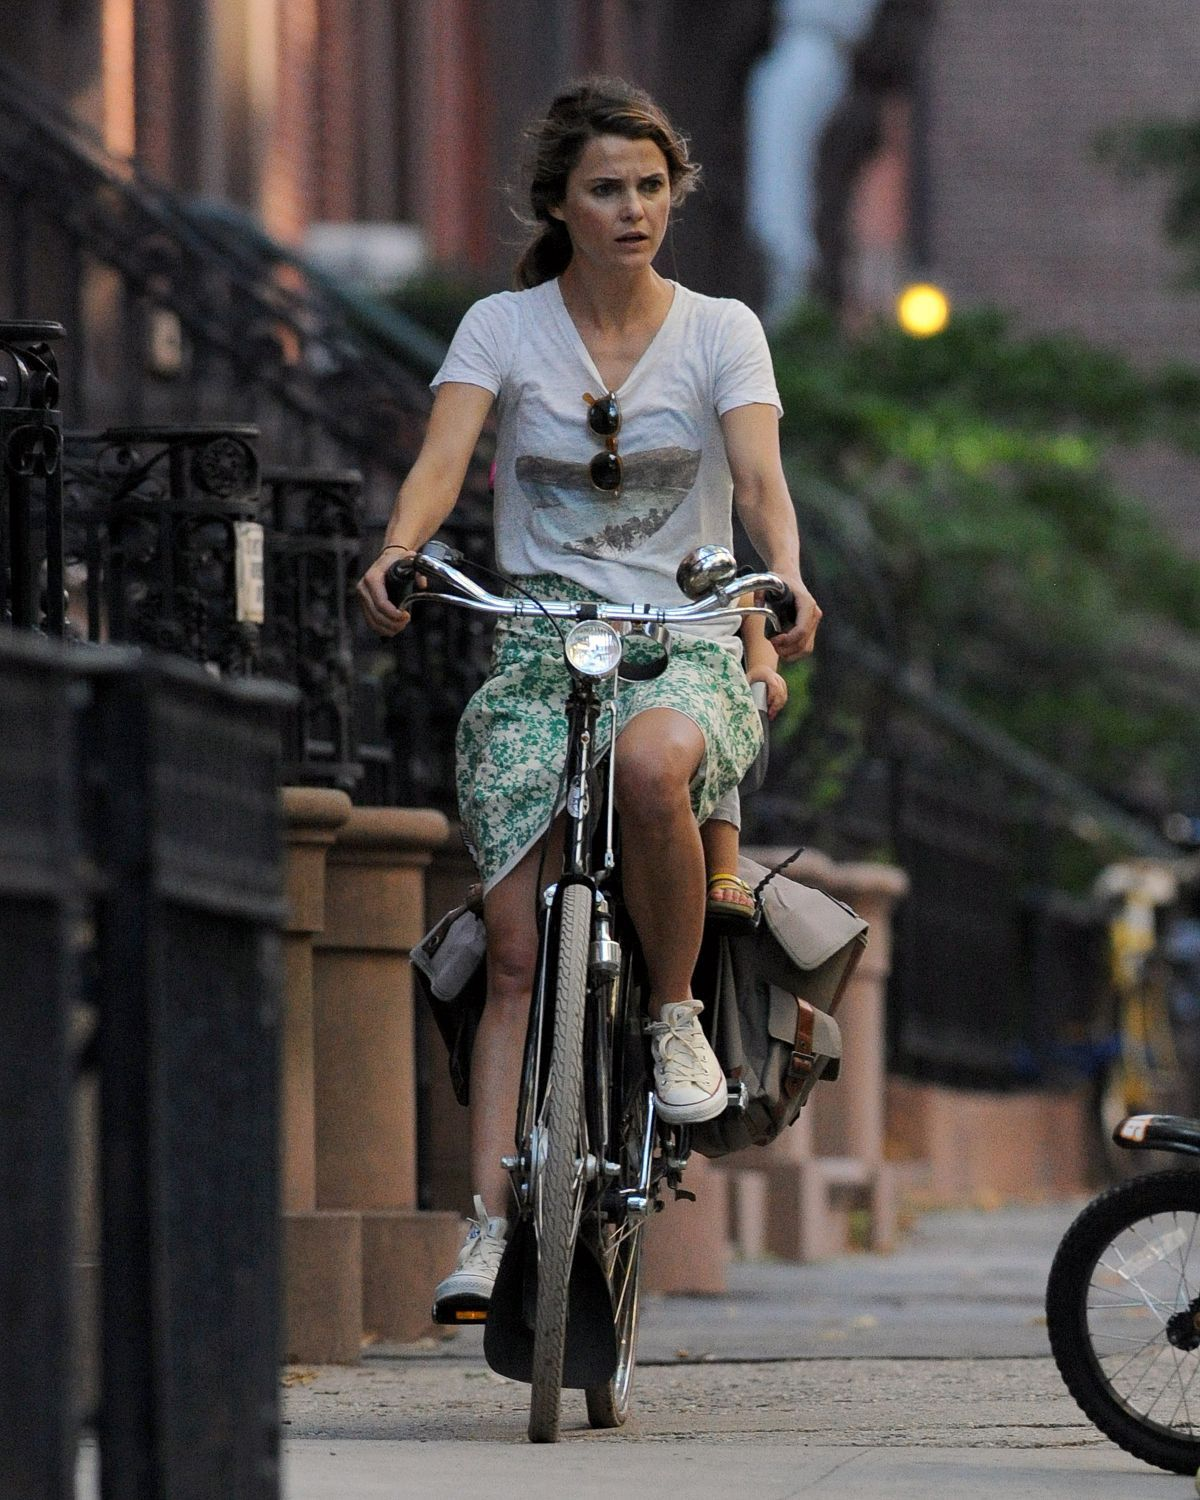 keri-russell-bike-ride-in-brooklyn_2.jpg (1200×1500)